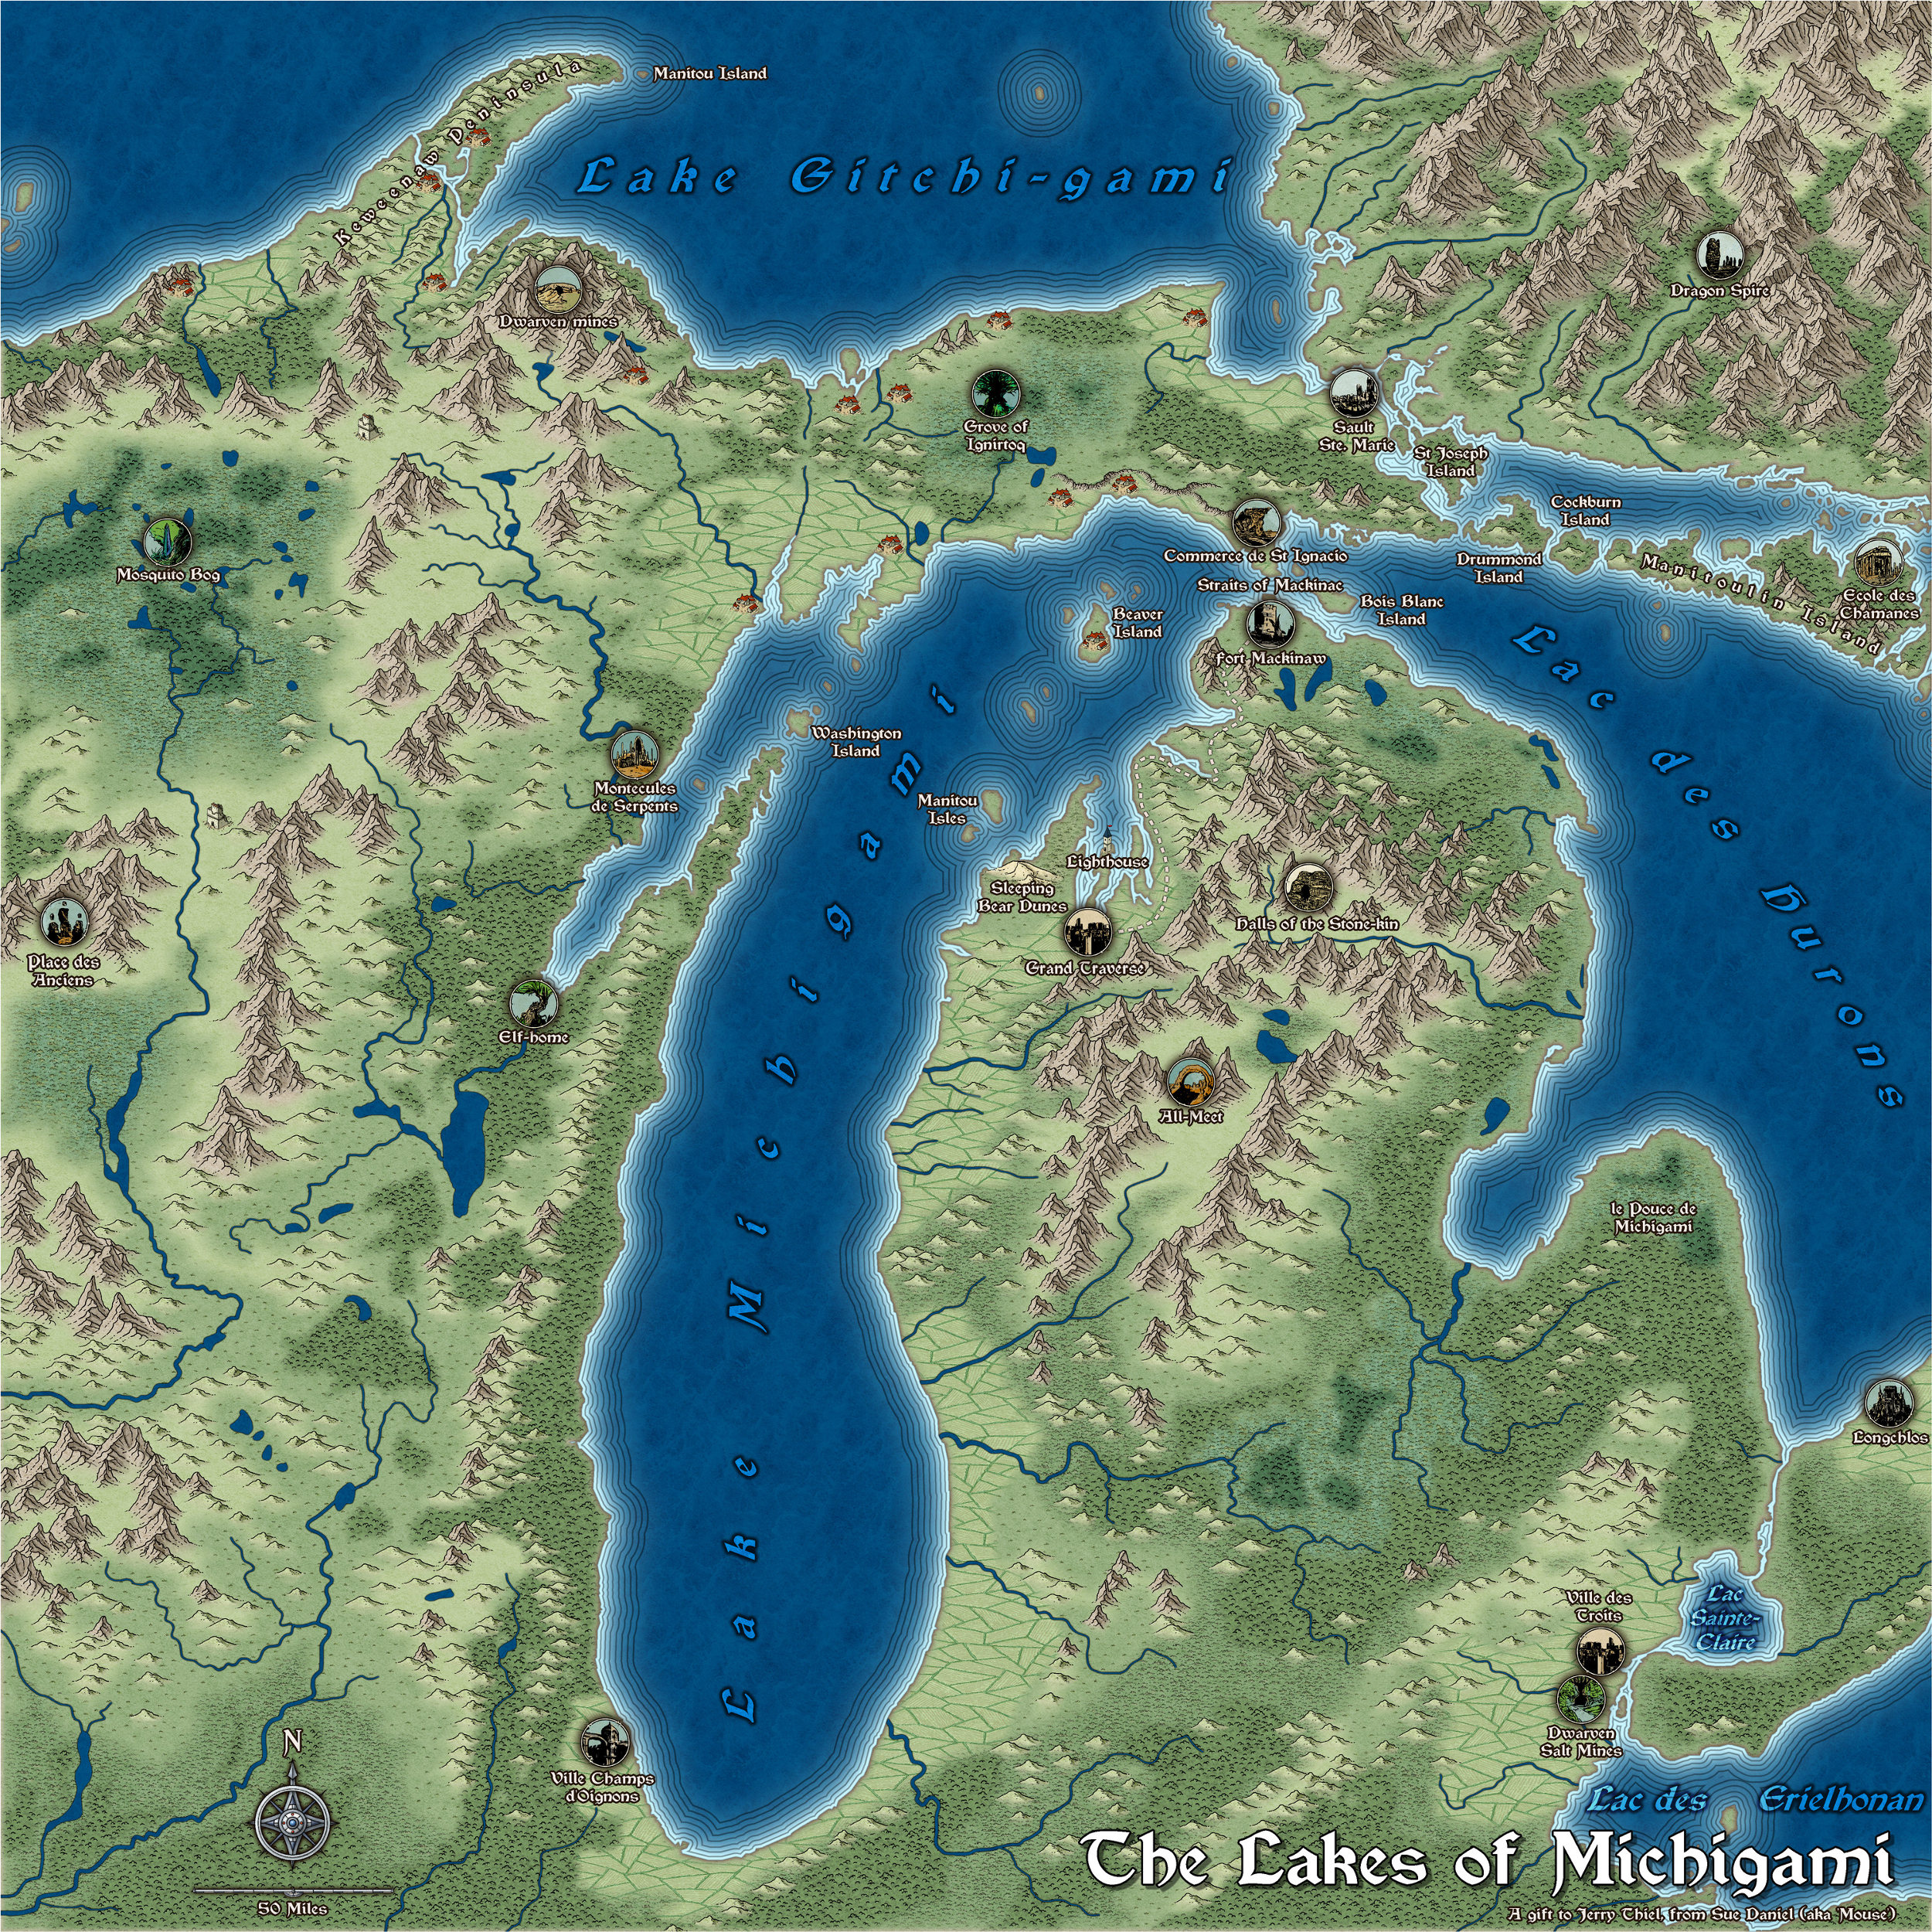 The Lakes of Michigami 2500.JPG